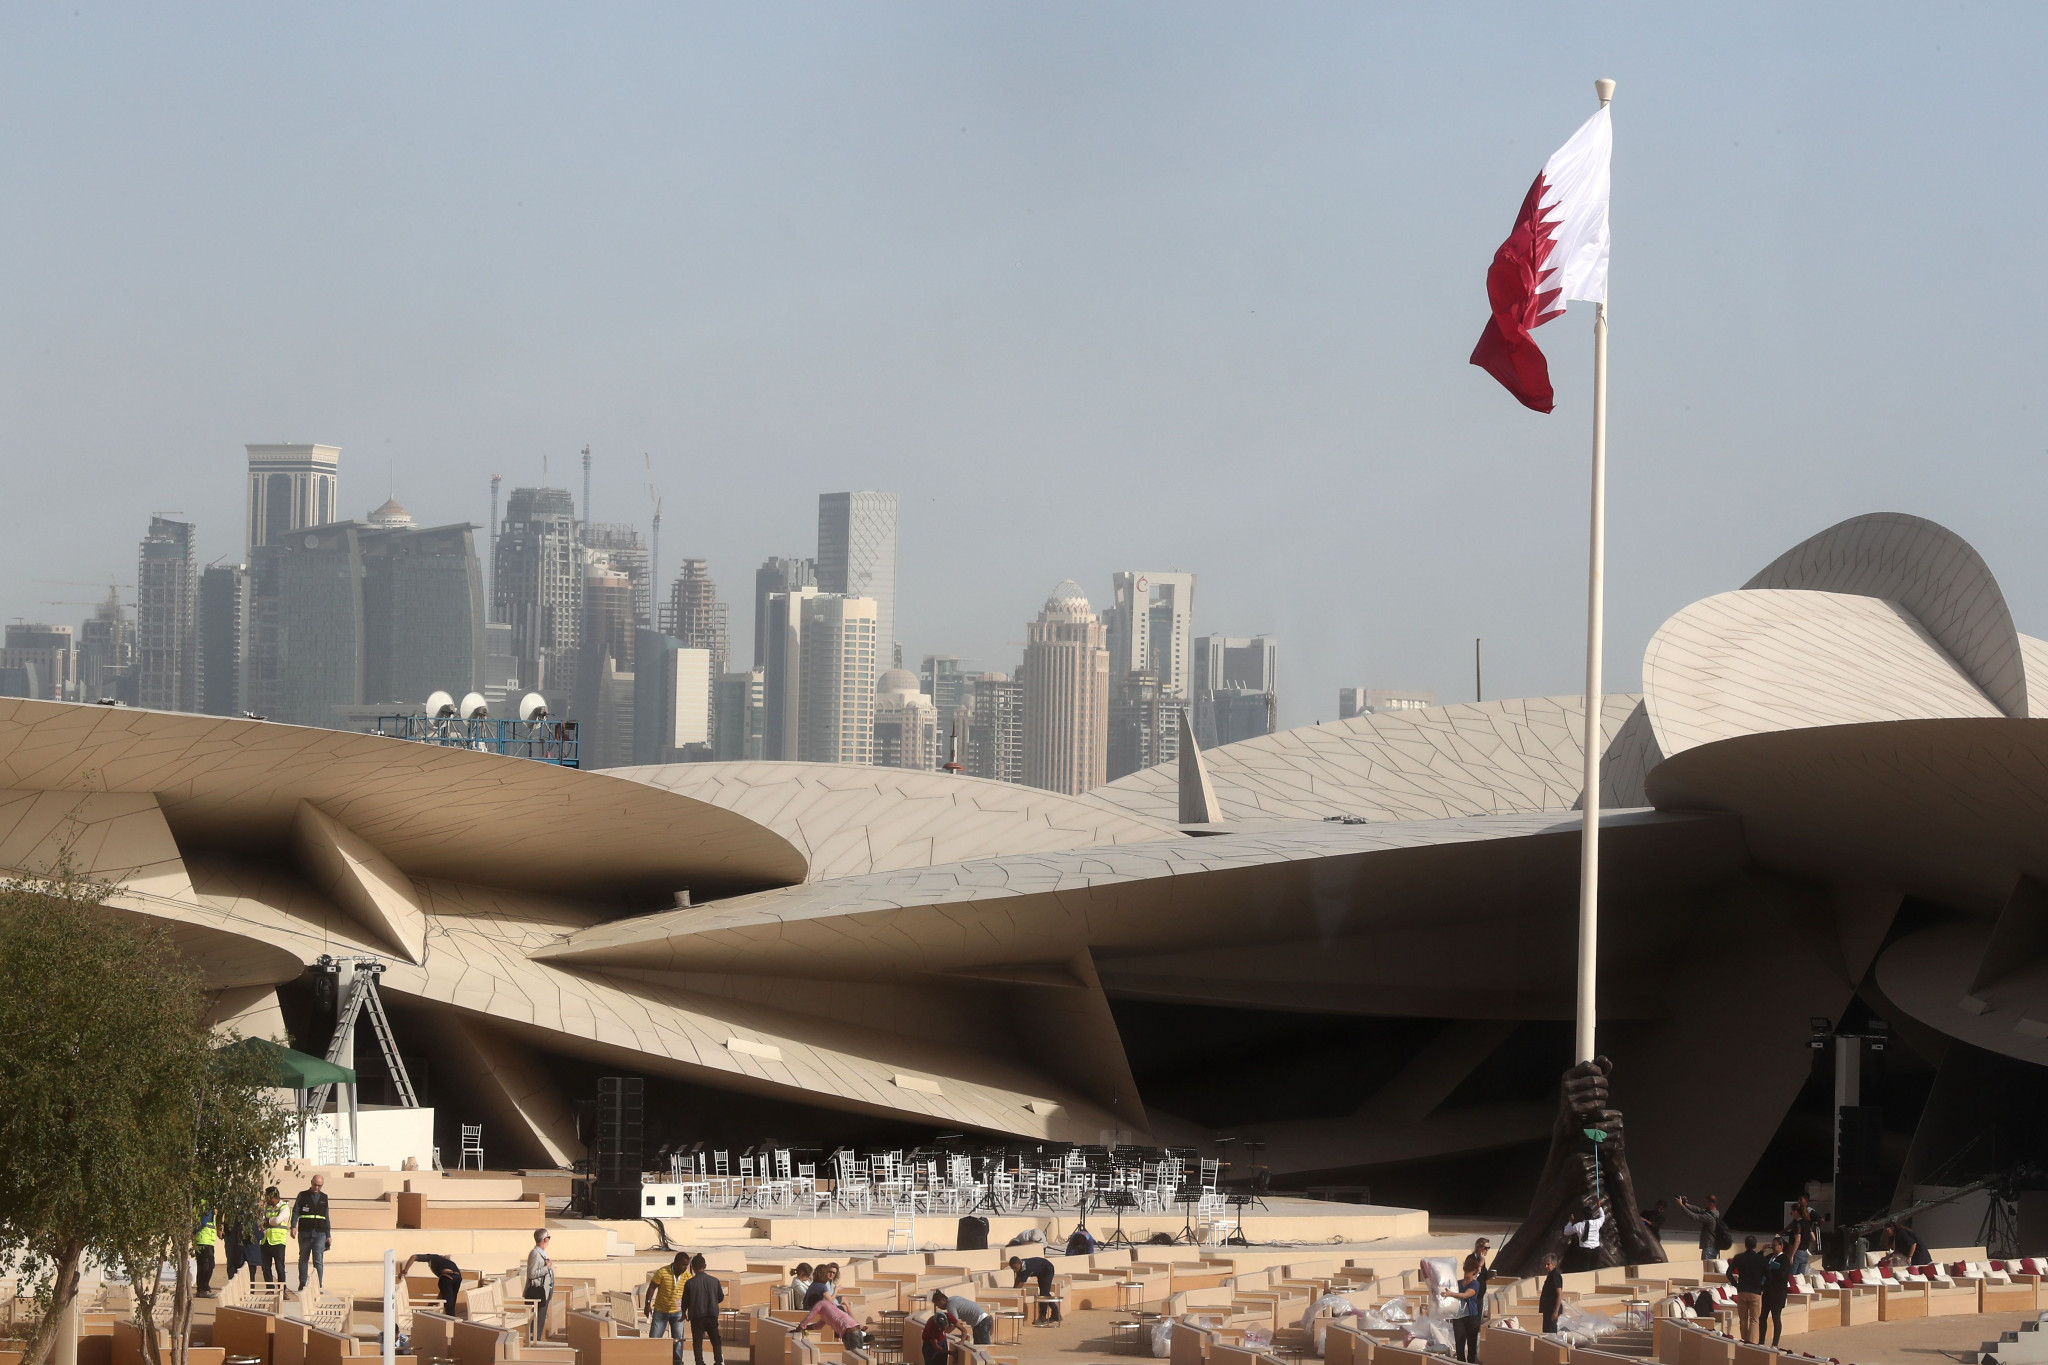 Qatar has stepped in to host the ANOC World Beach Games at short notice ©Getty Images